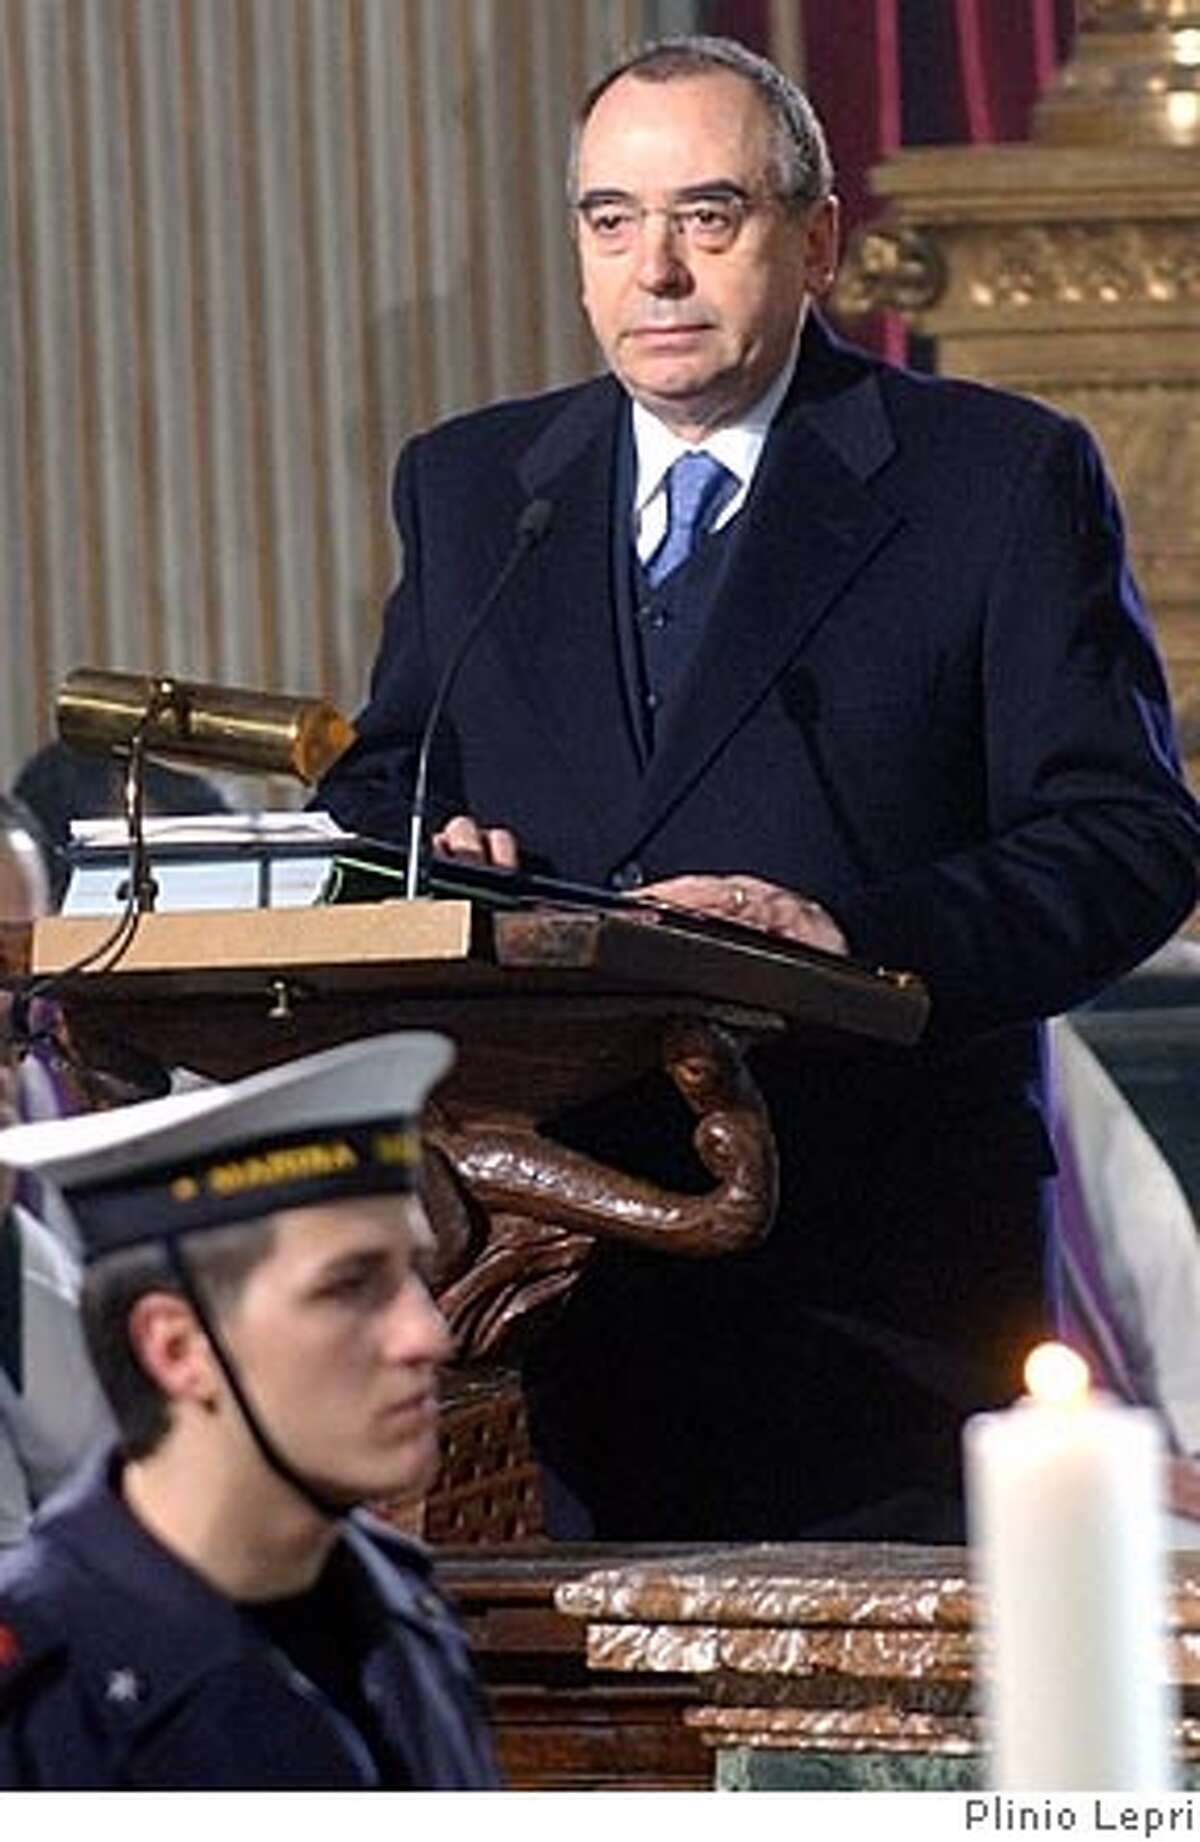 **FILE ** Head of Italian military intelligence, SISMI, Nicolo Pollari speaks at the funeral of late Italian intelligence officer Nicola Calipari in Rome, in this March 7, 2005 file photograph. The head of Italy's military secret services will be questioned by a parliamentary commission on Nov. 3, 2005 over allegations that his organization gave the United States and Britain disputed documents suggesting that Saddam Hussein had been seeking uranium in Africa, officials said Tuesday, Oct. 25, 2005. The documents detailed a purported Iraqi deal to buy 500 tons of uranium yellowcake from Niger. (AP Photo/Plinio Lepri, File) MARCH 7, 2005 FILE PHOTOGRAPH